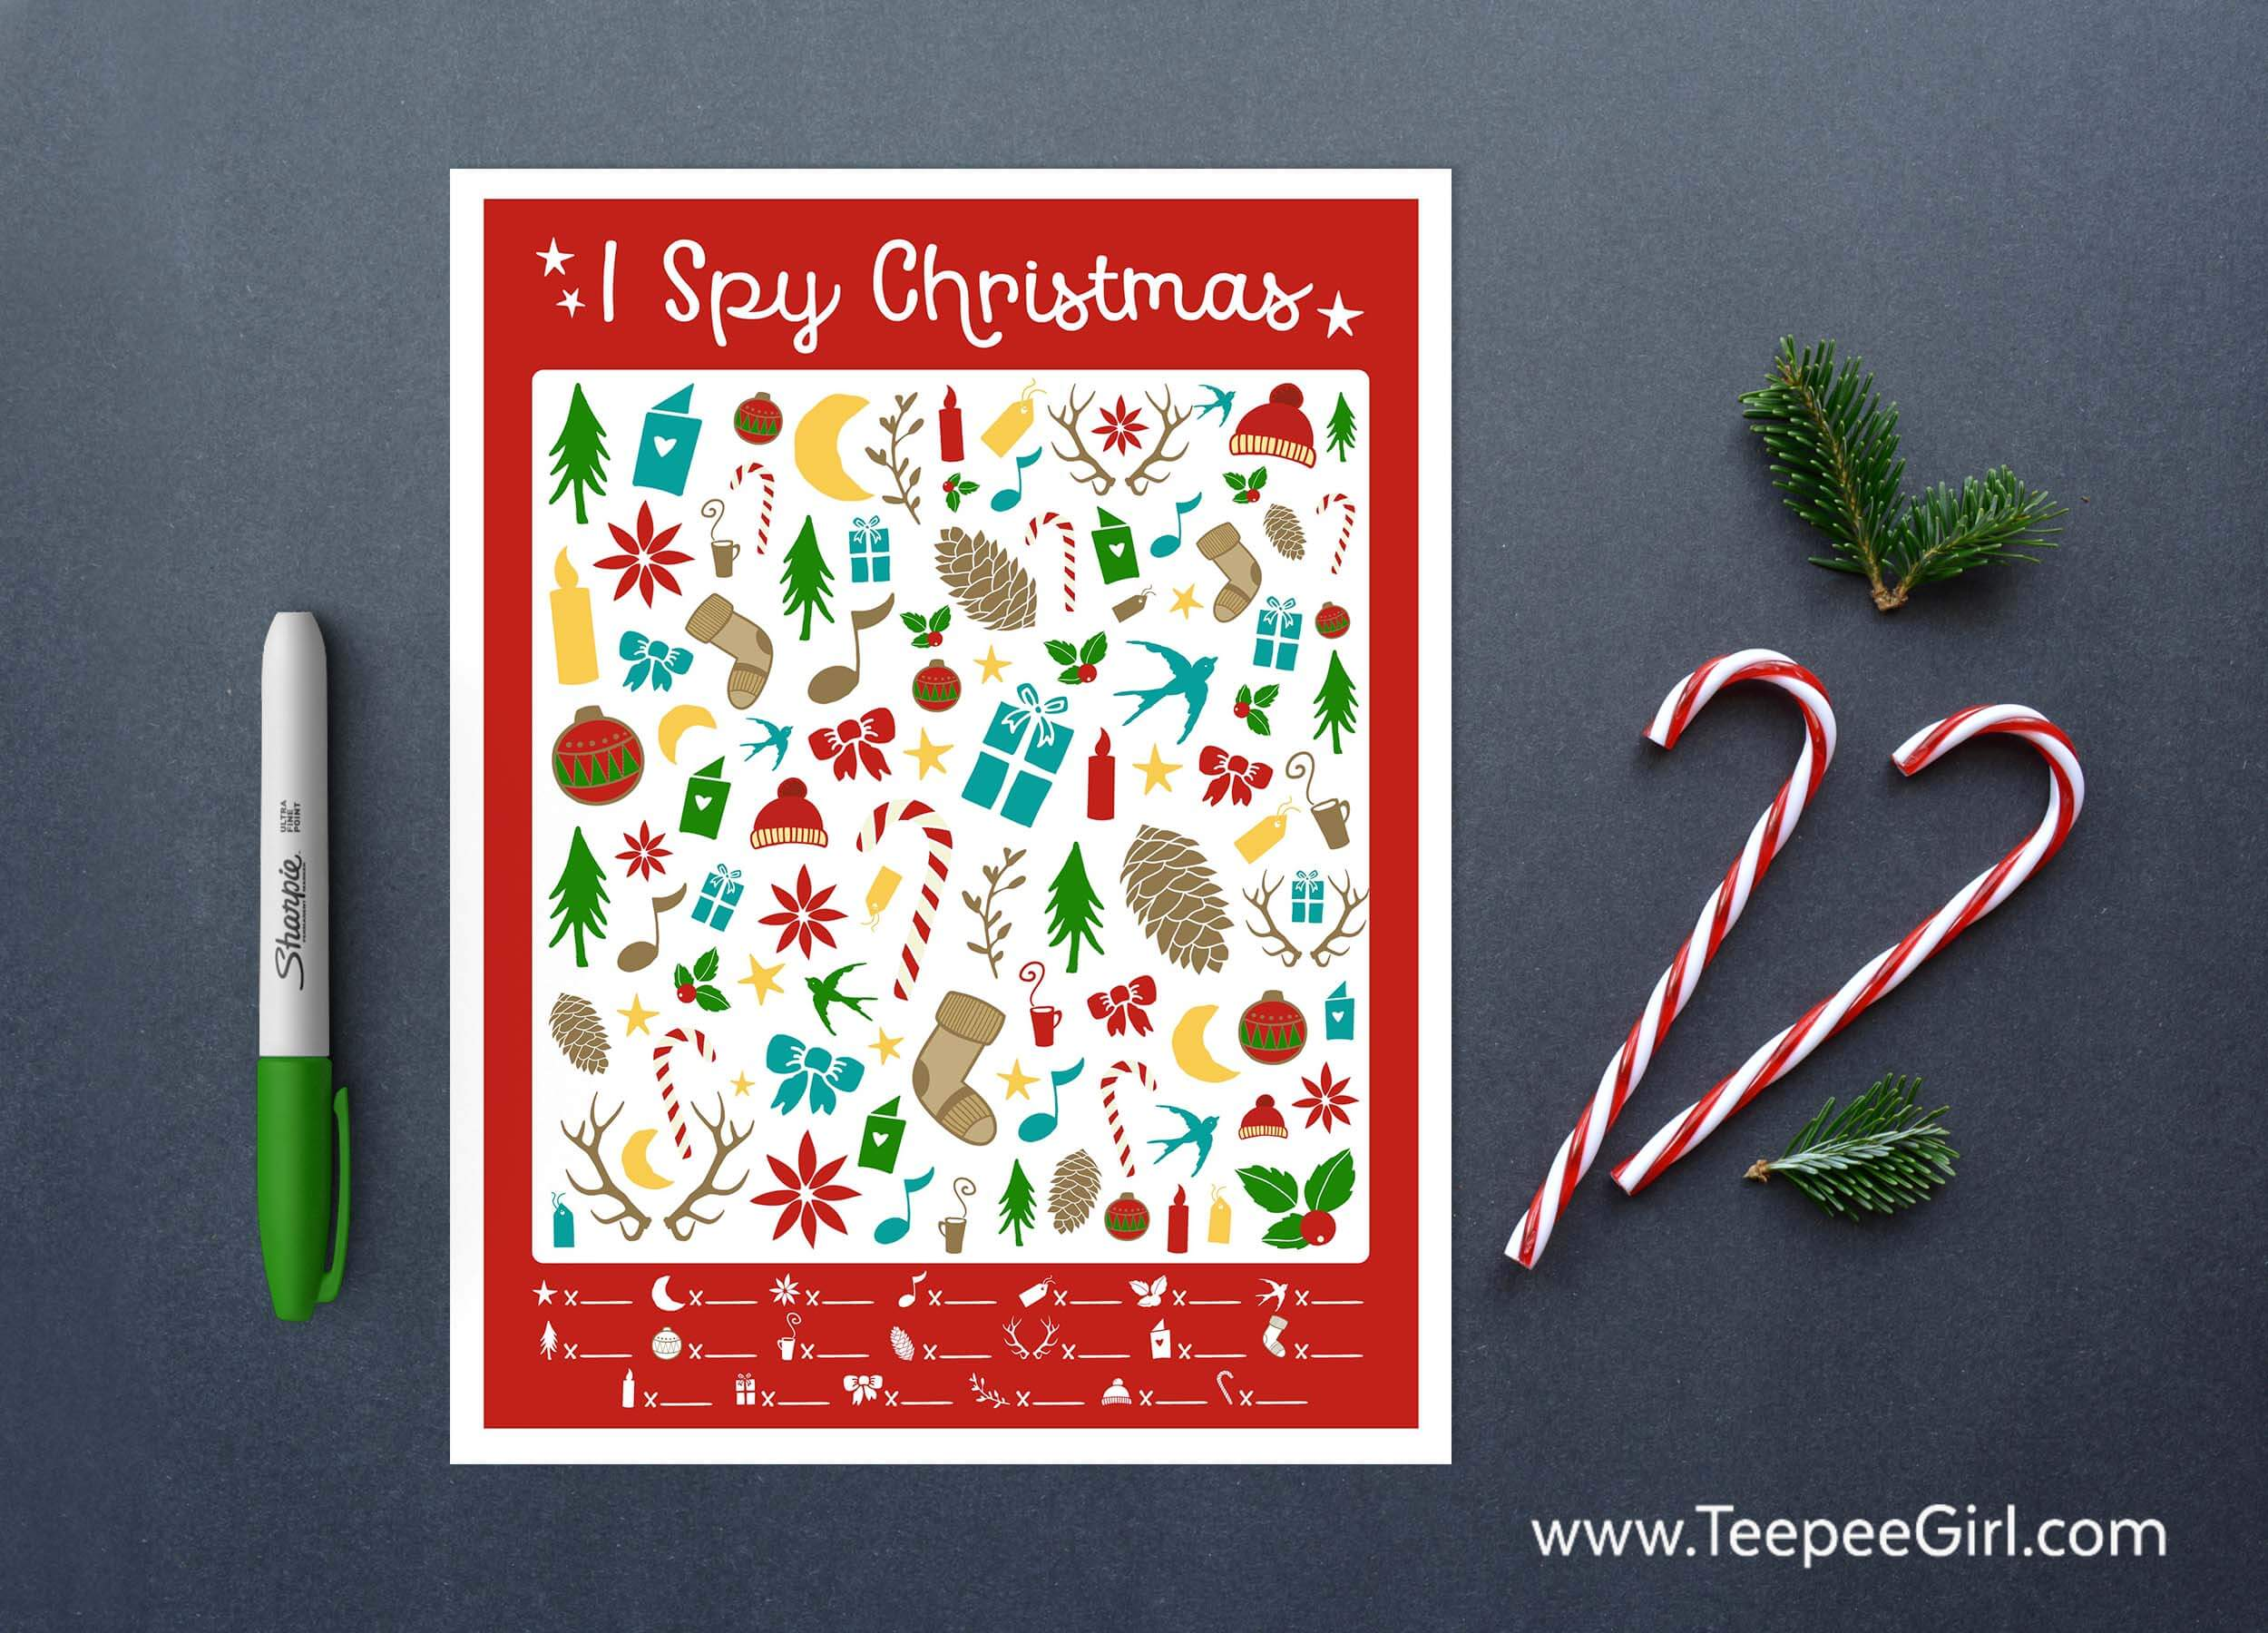 Free I Spy Christmas Printable Game - Teepee Girl